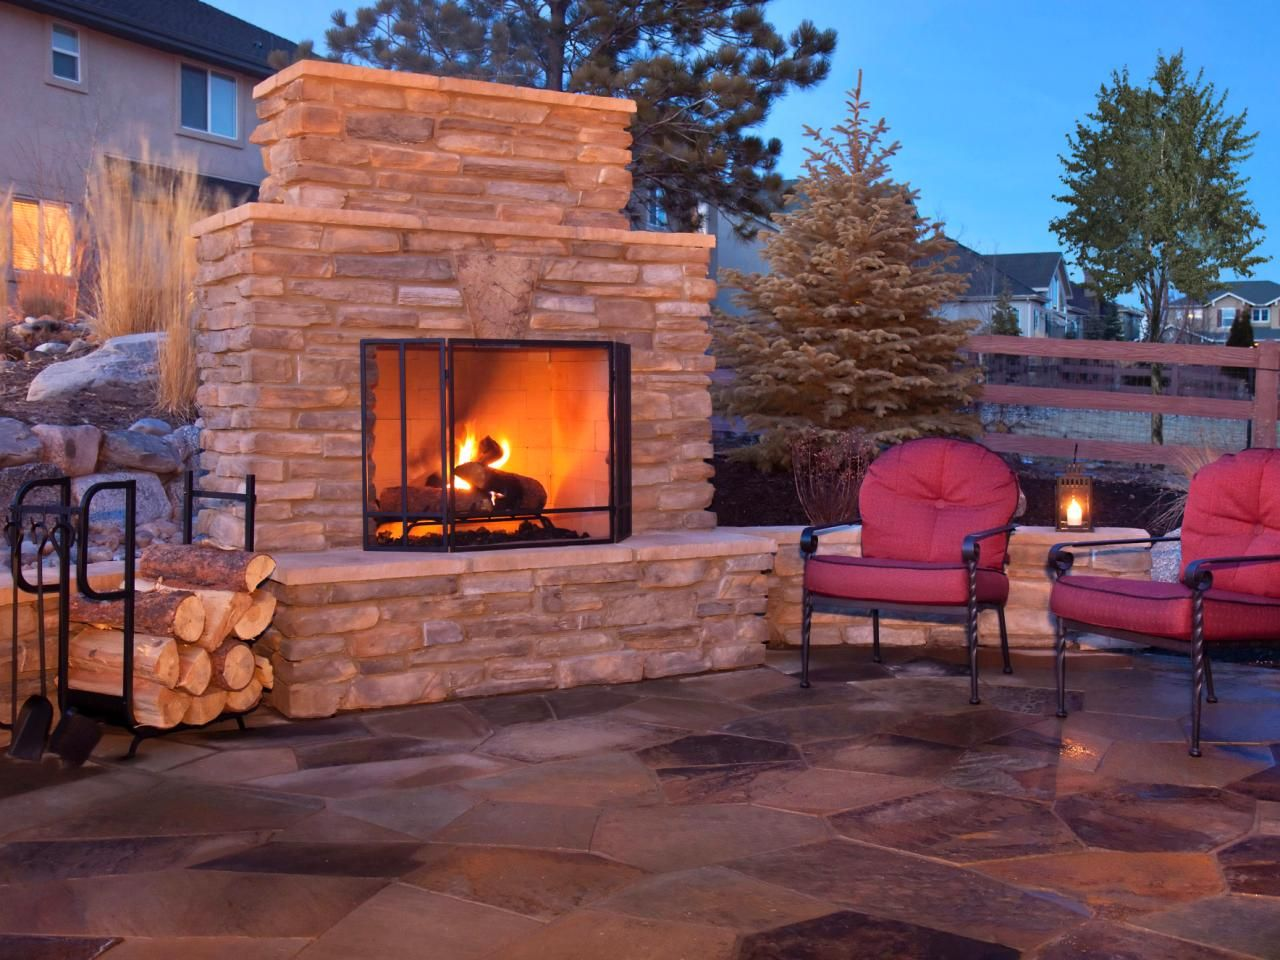 How to Plan for Building an Outdoor Fireplace - 17 Best Ideas About Outdoor Gas Fireplace On Pinterest Outdoor